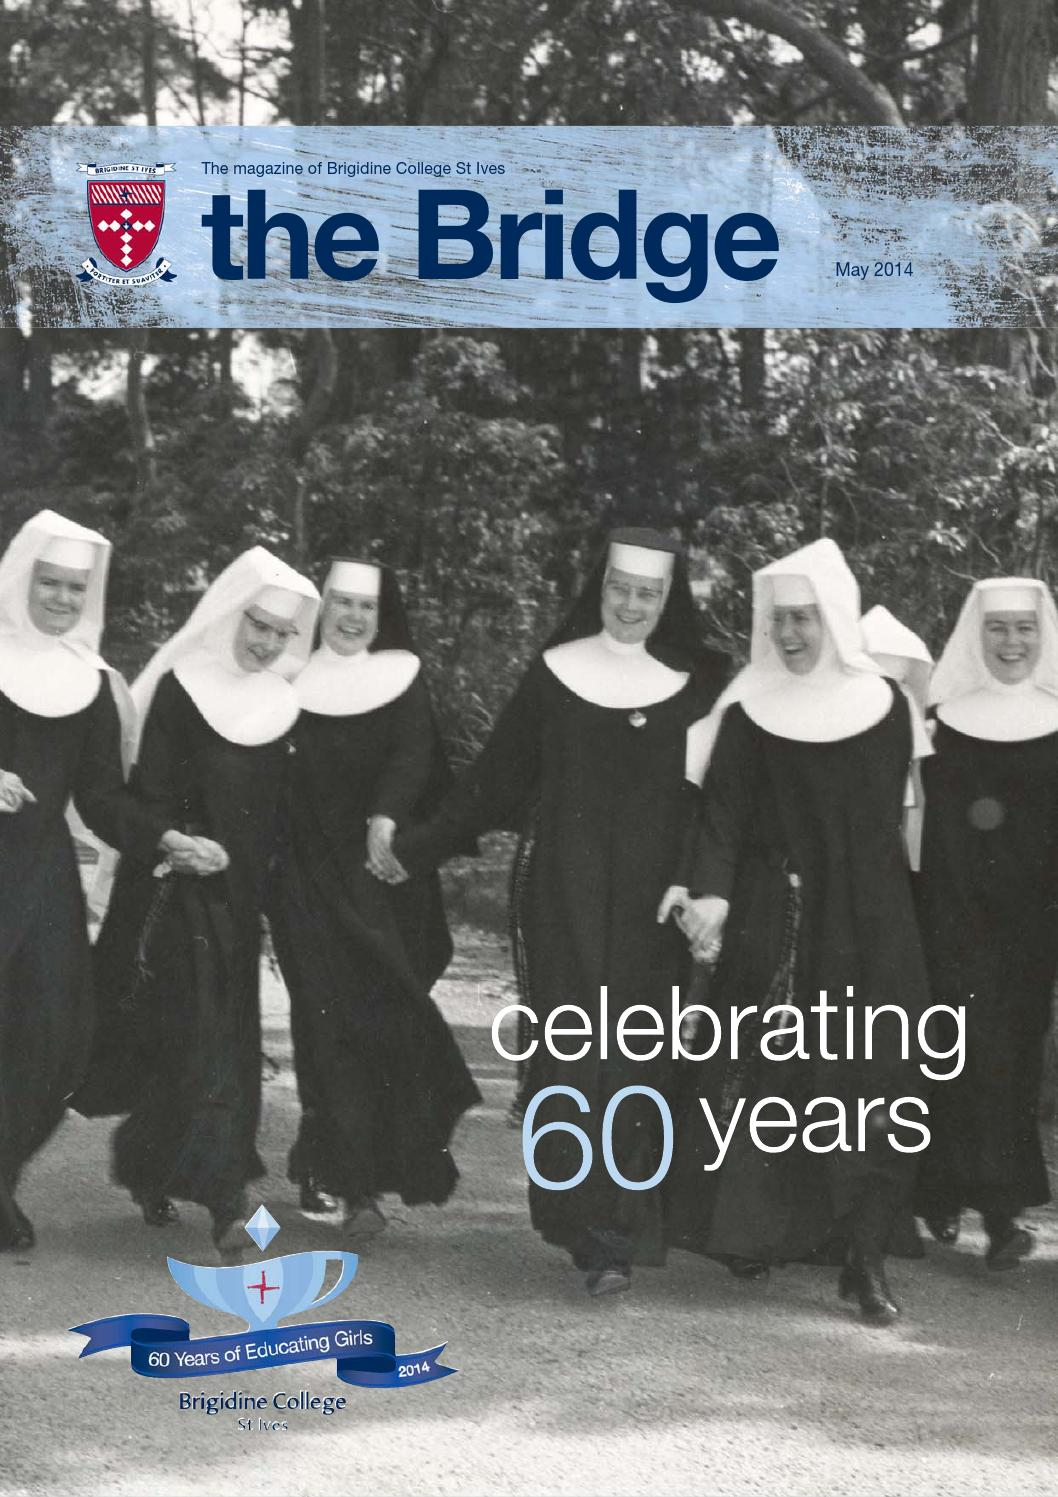 The bridge issue 1 2014 by brigidine college st ives issuu fandeluxe Images